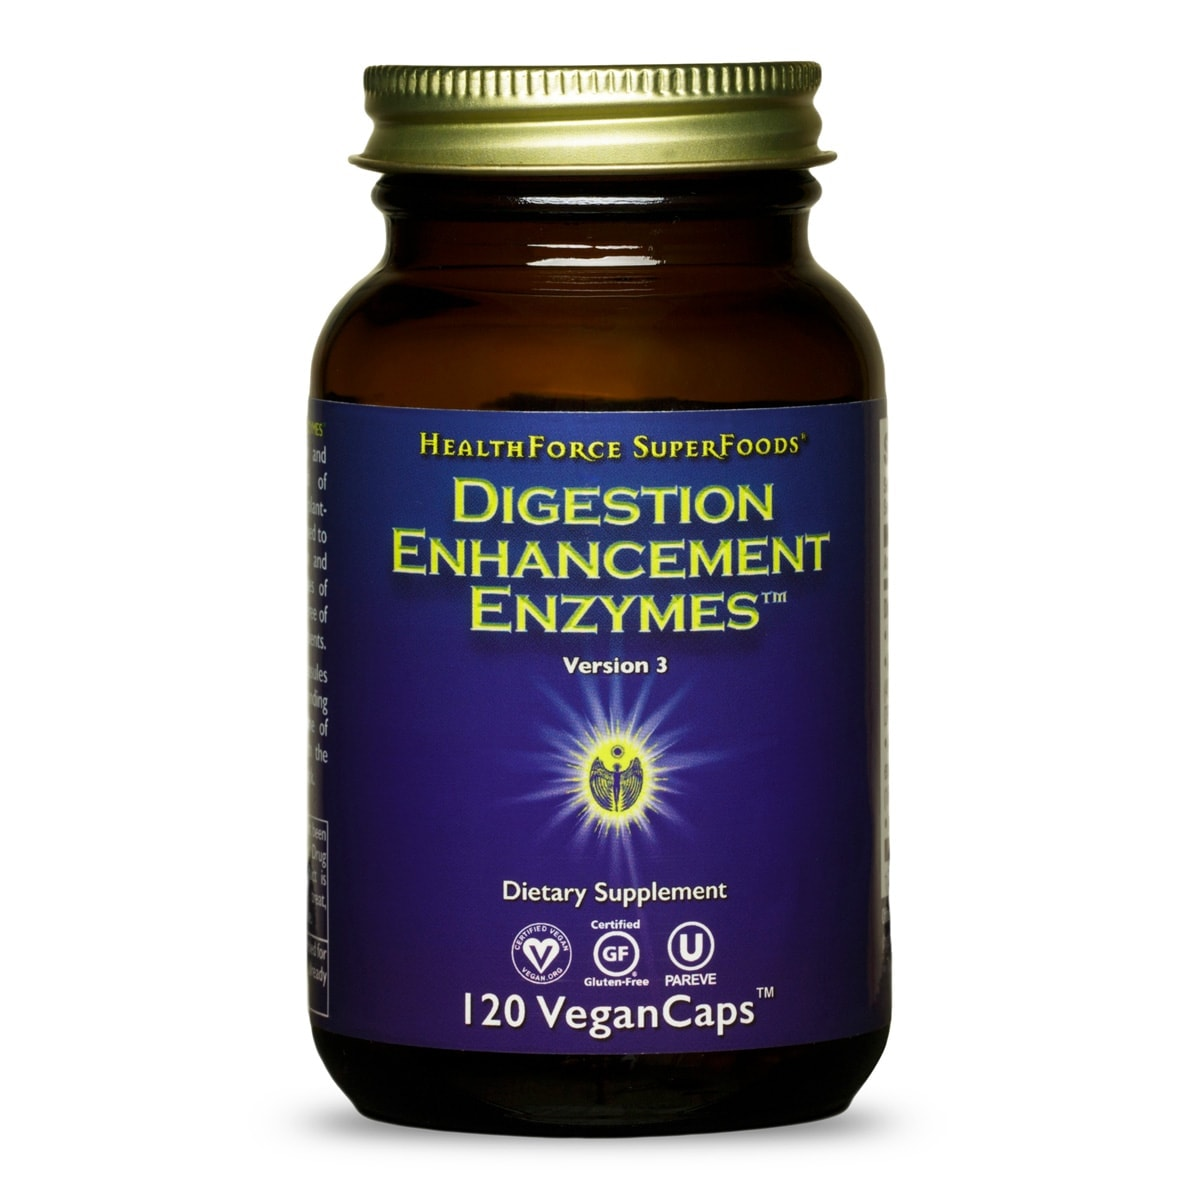 Digestion Enhancement Enzymes™